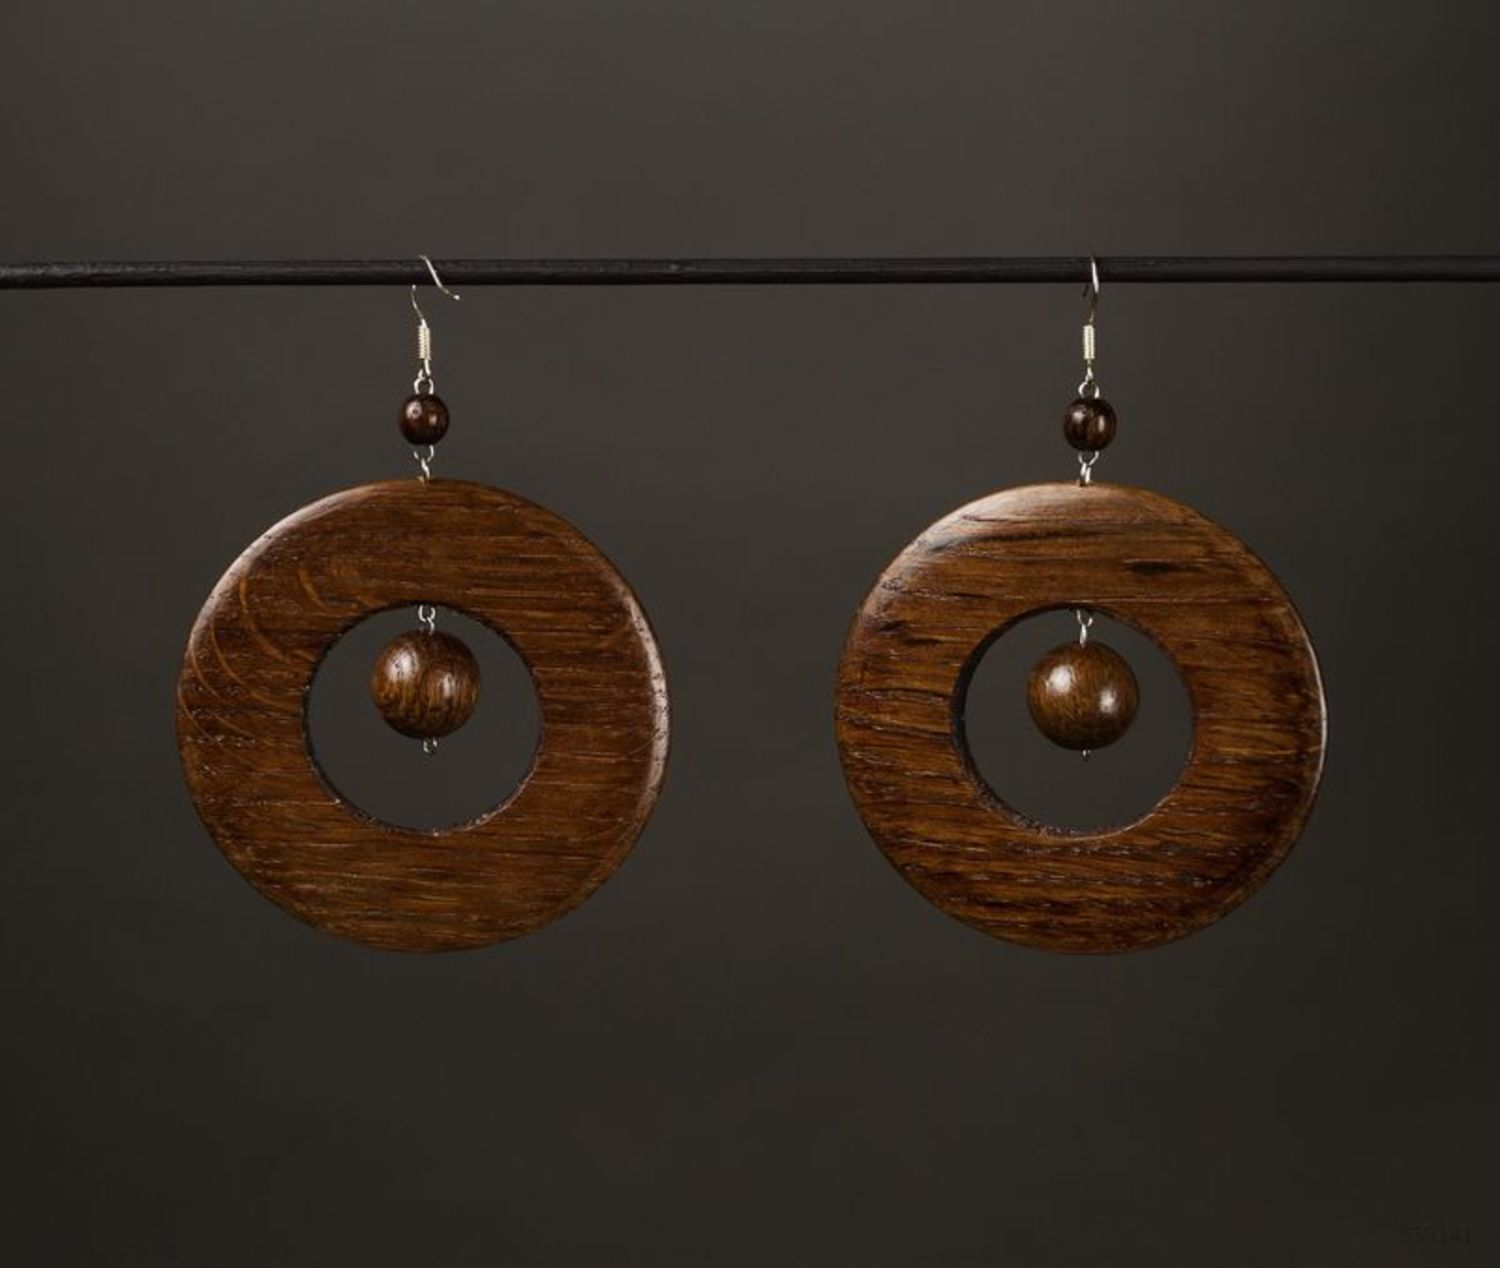 Round earrings made of wood photo 1